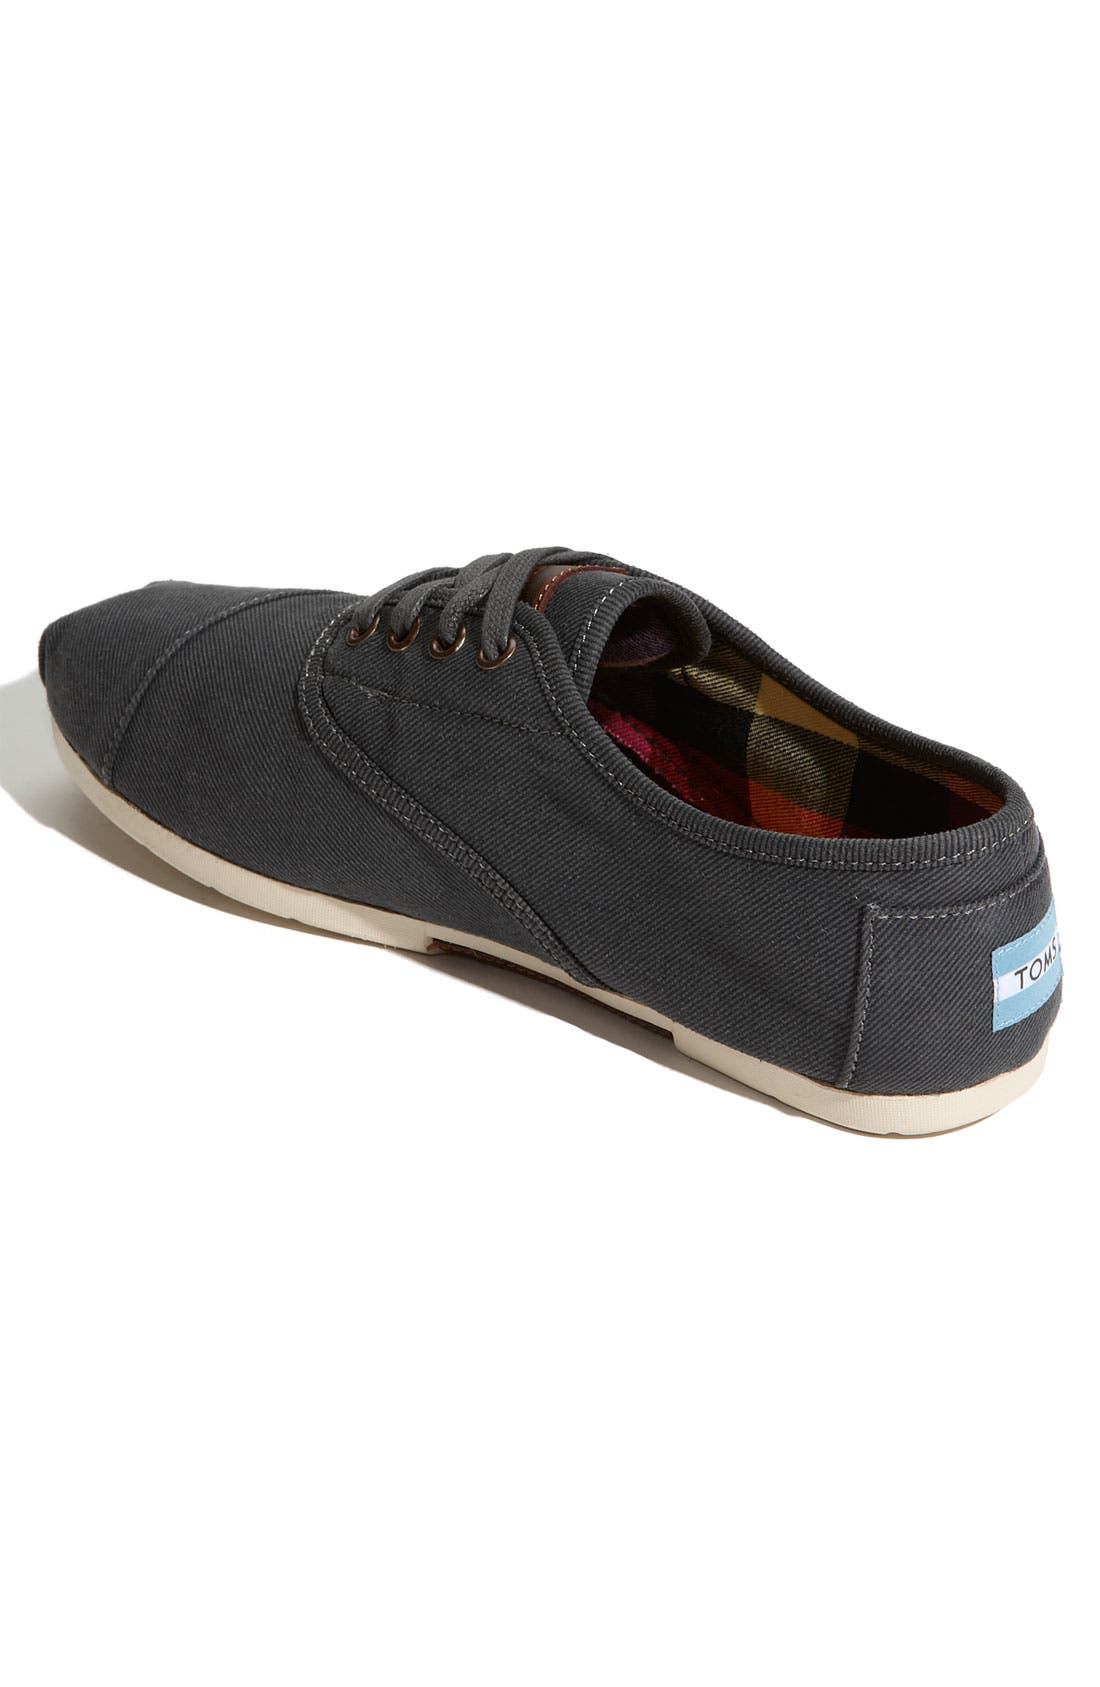 Alternate Image 2  - TOMS 'Cordones' Waxed Canvas Sneaker (Men)